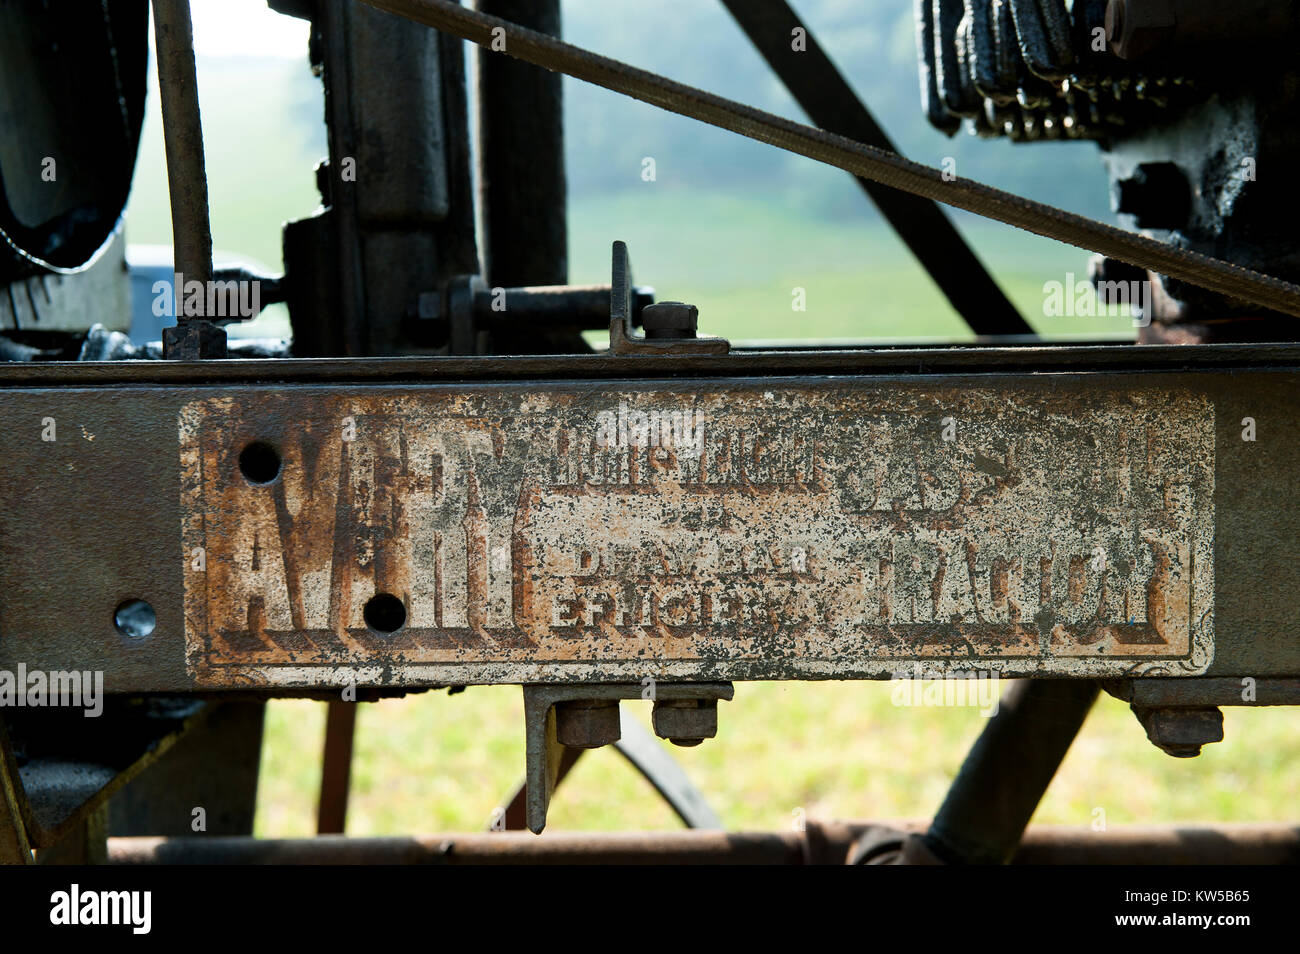 1923 avery model 20 35 close up of original decals in exceptional